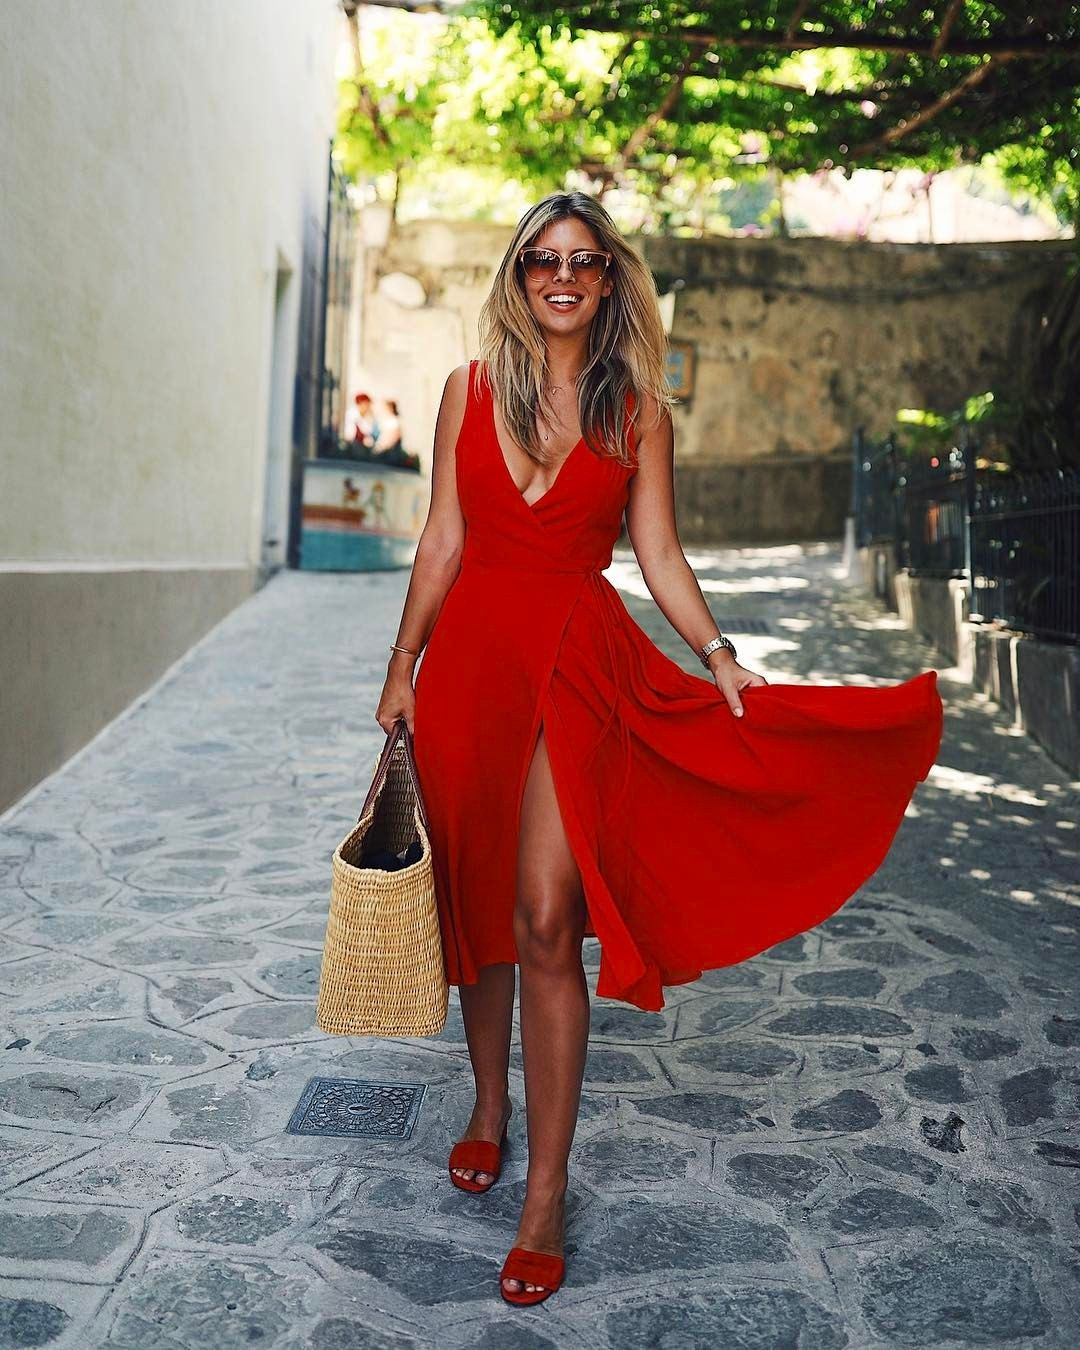 Fashion style Wedding summer in italy what to wear for woman